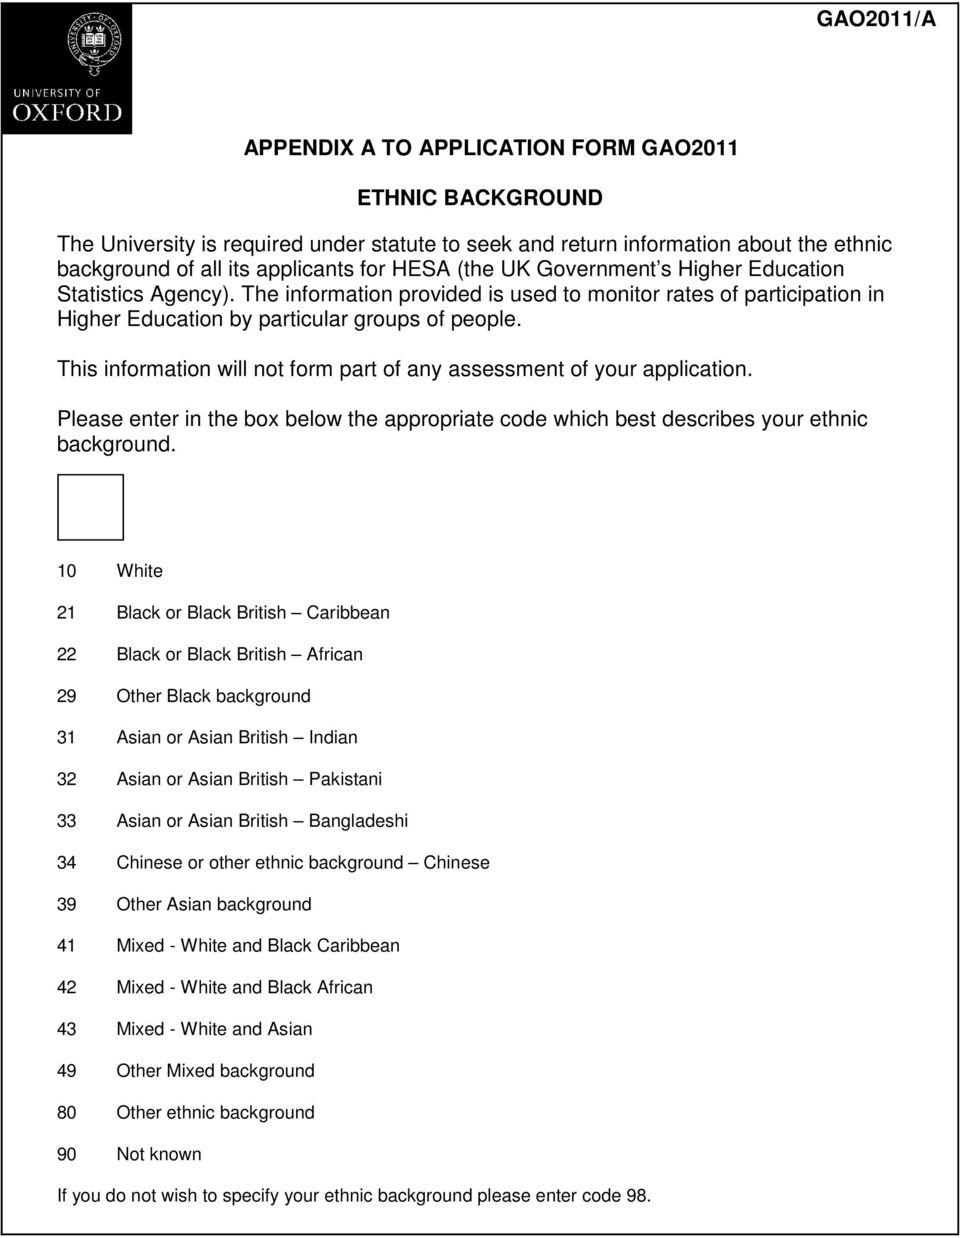 This information will not form part of any assessment of your application. Please enter in the box below the appropriate code which best describes your ethnic background.